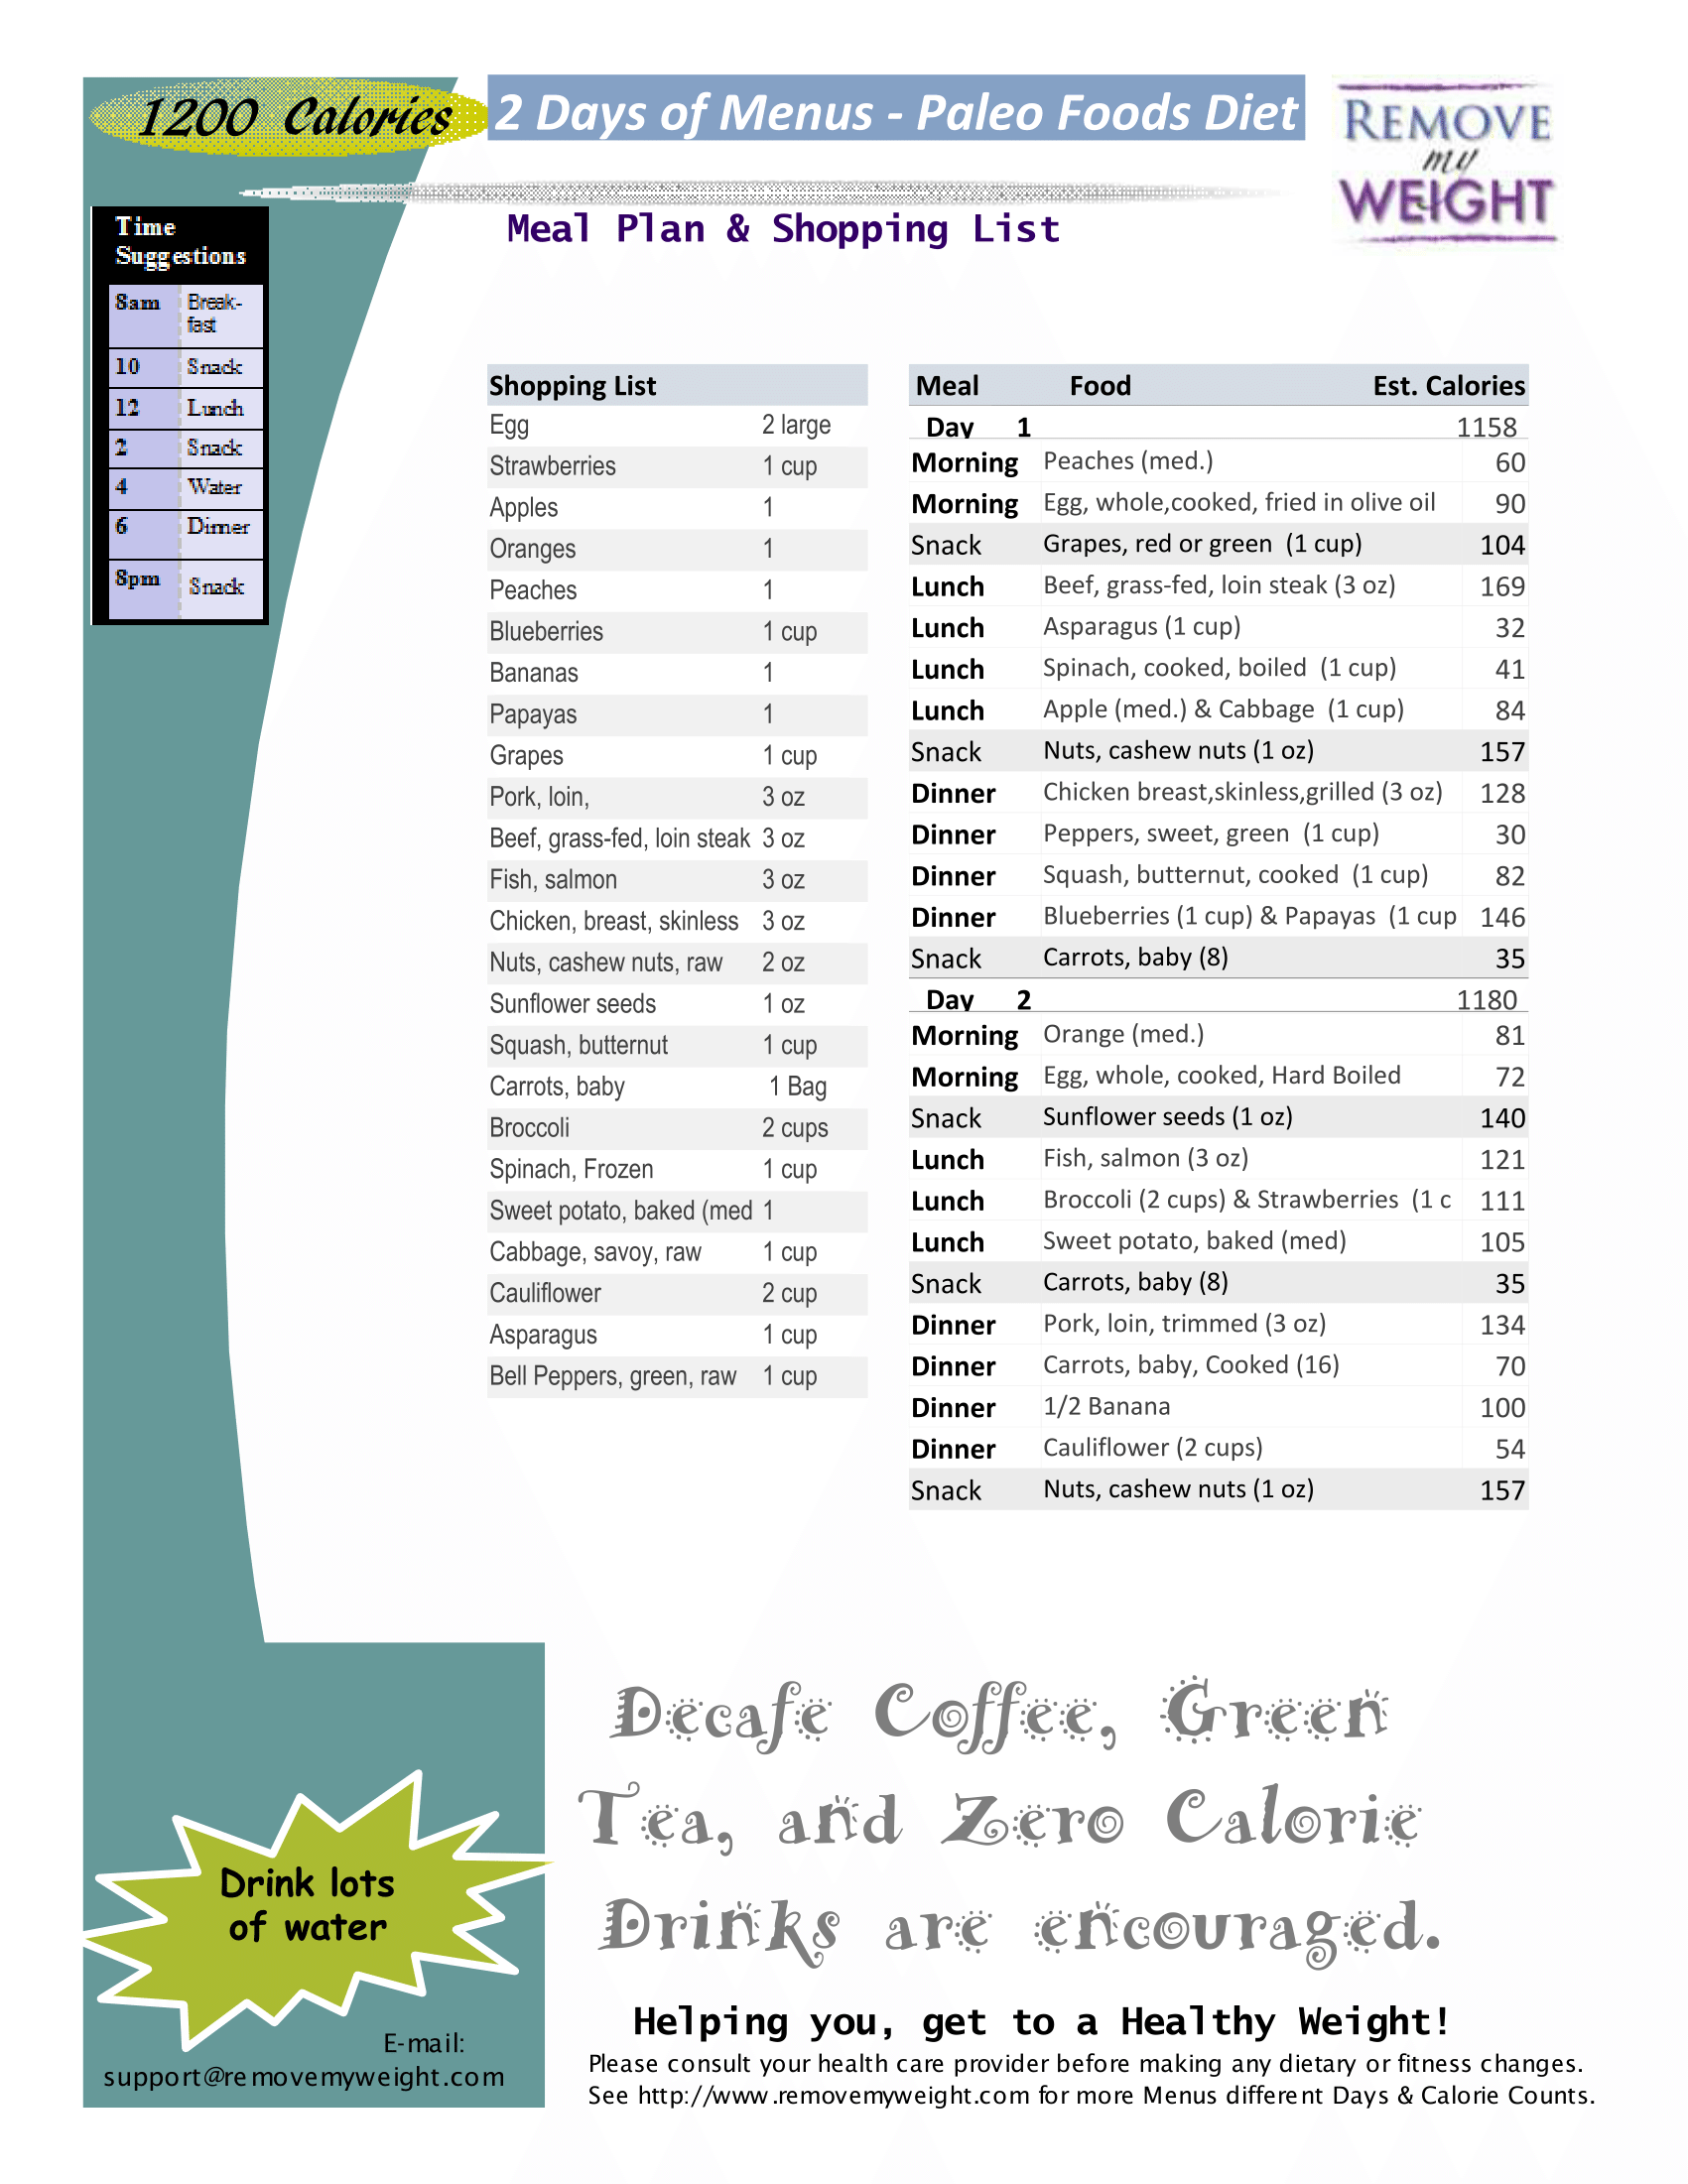 Paleo Diet Menu Plan  Days   Calories With Shopping List